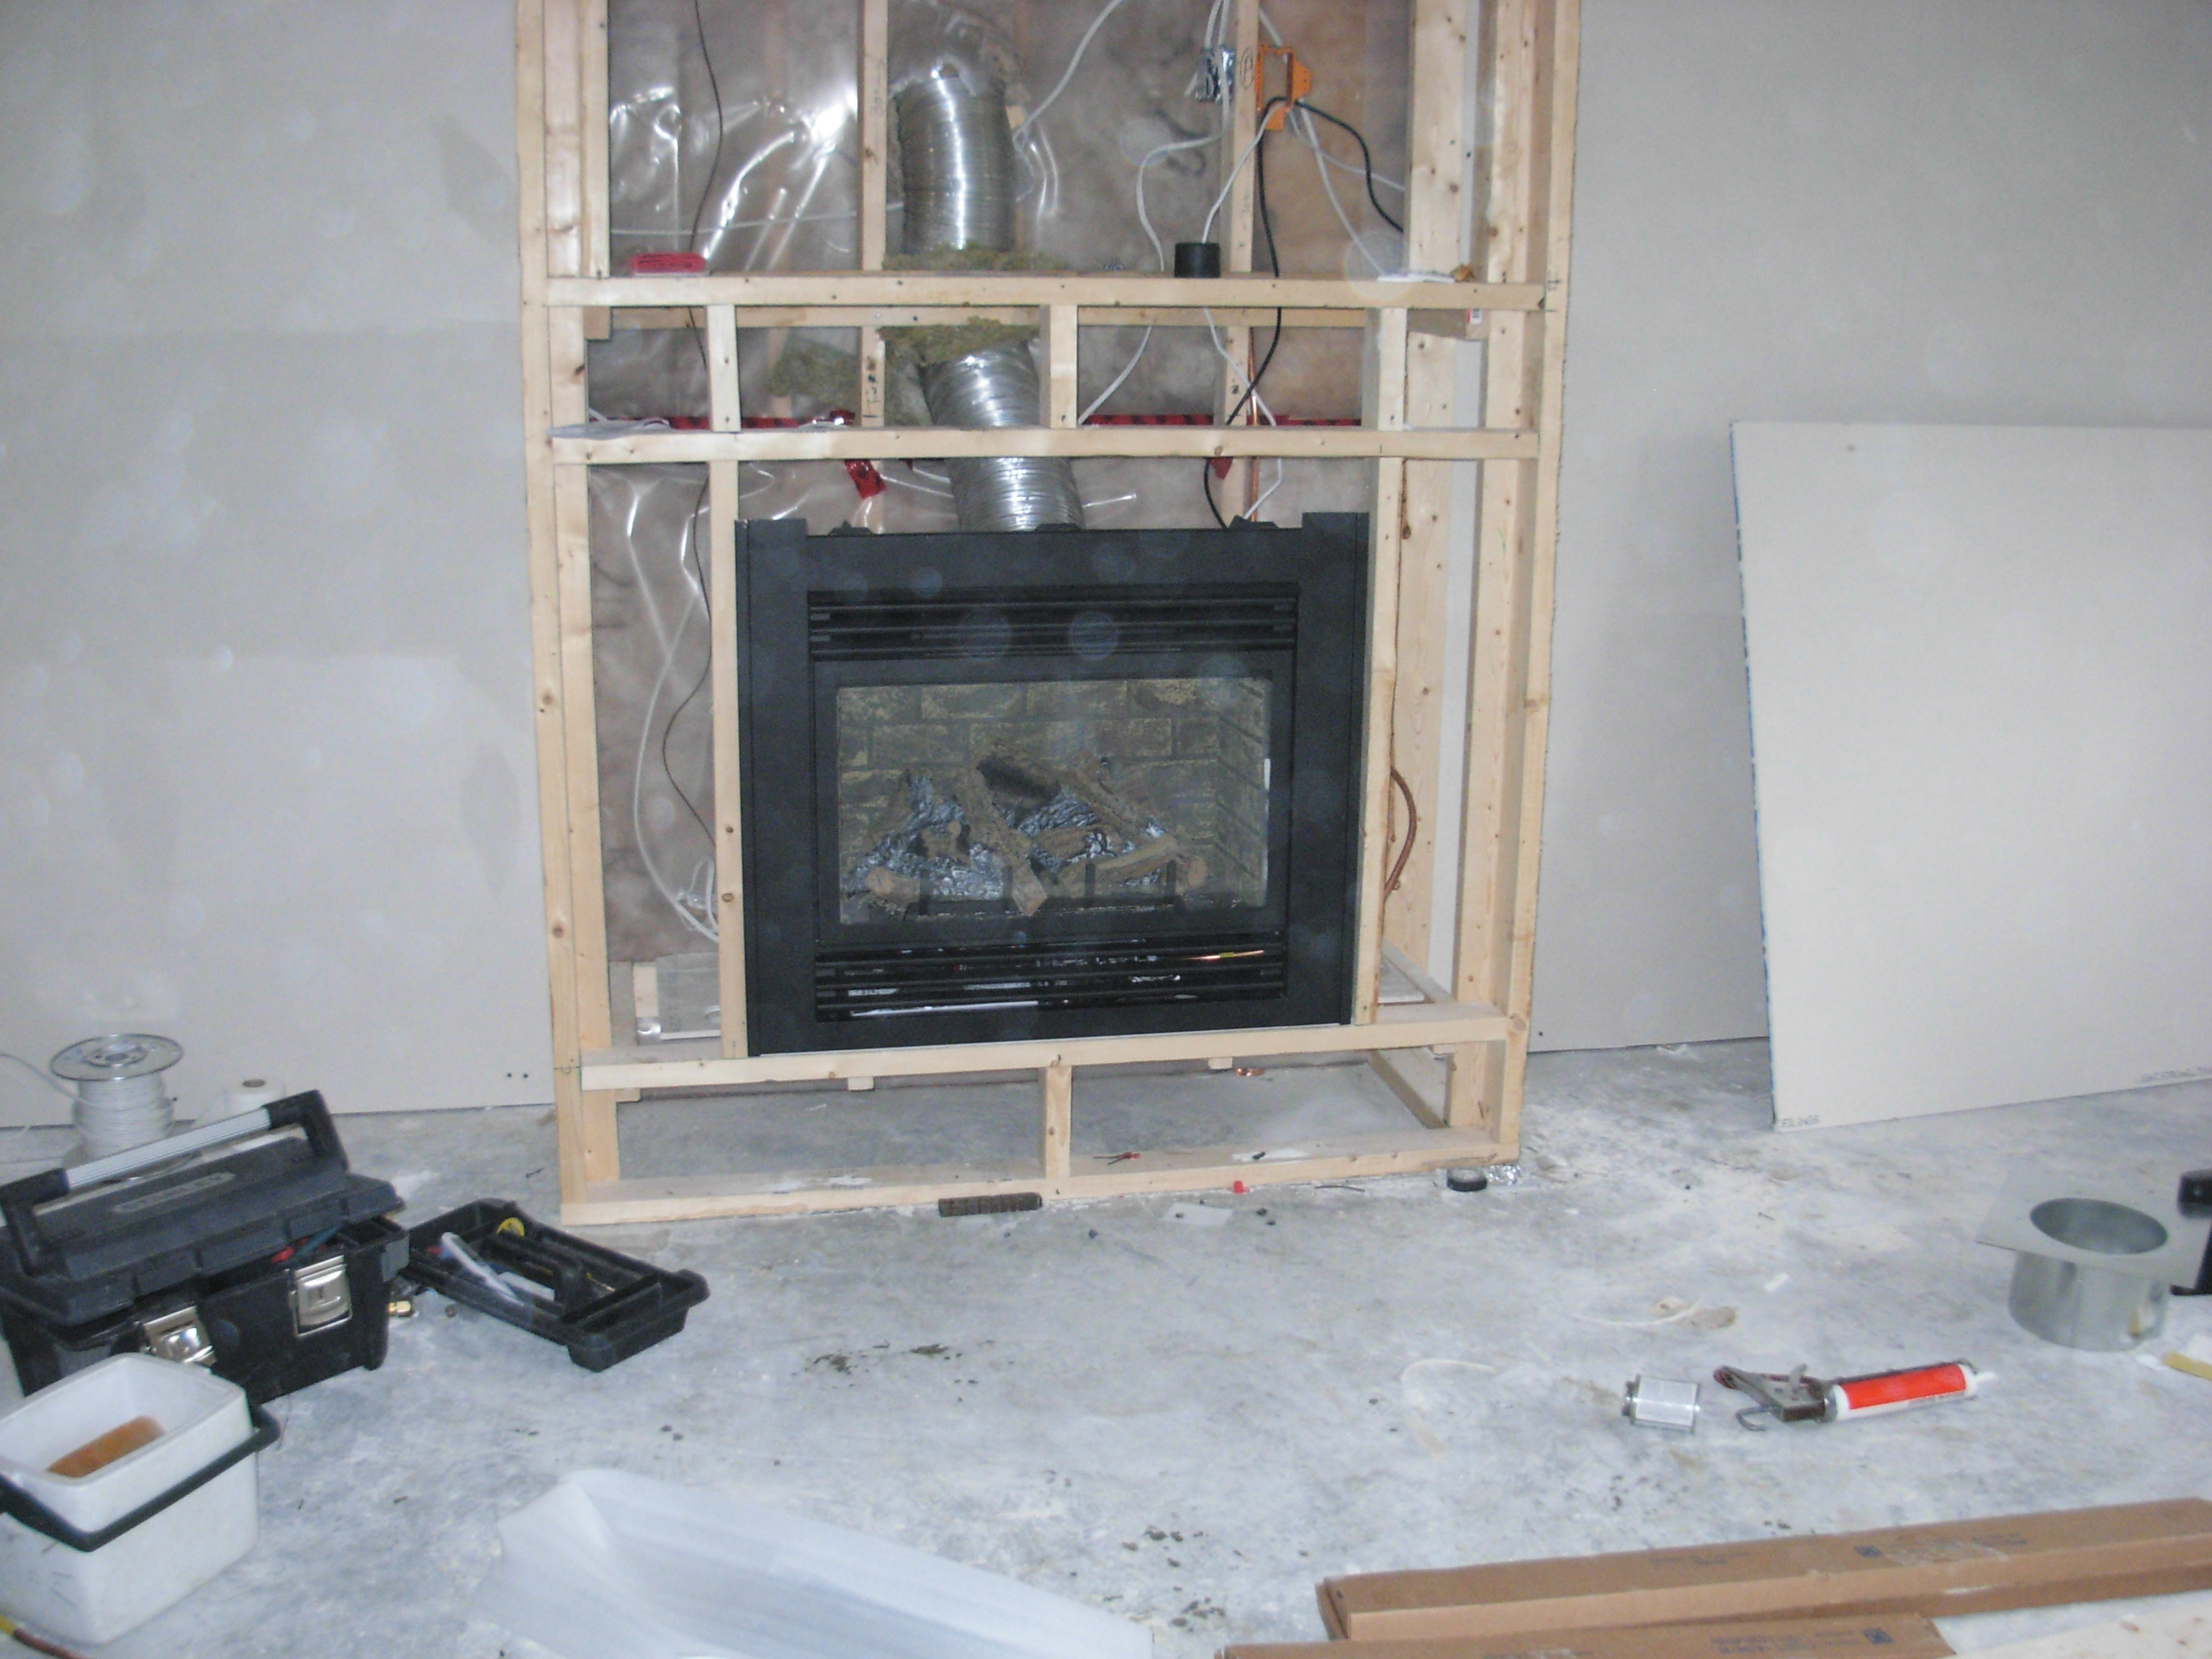 official visit click ontario barrie website kingsman here gasfireplacesbarrie of ca outlet gas the fireplace to